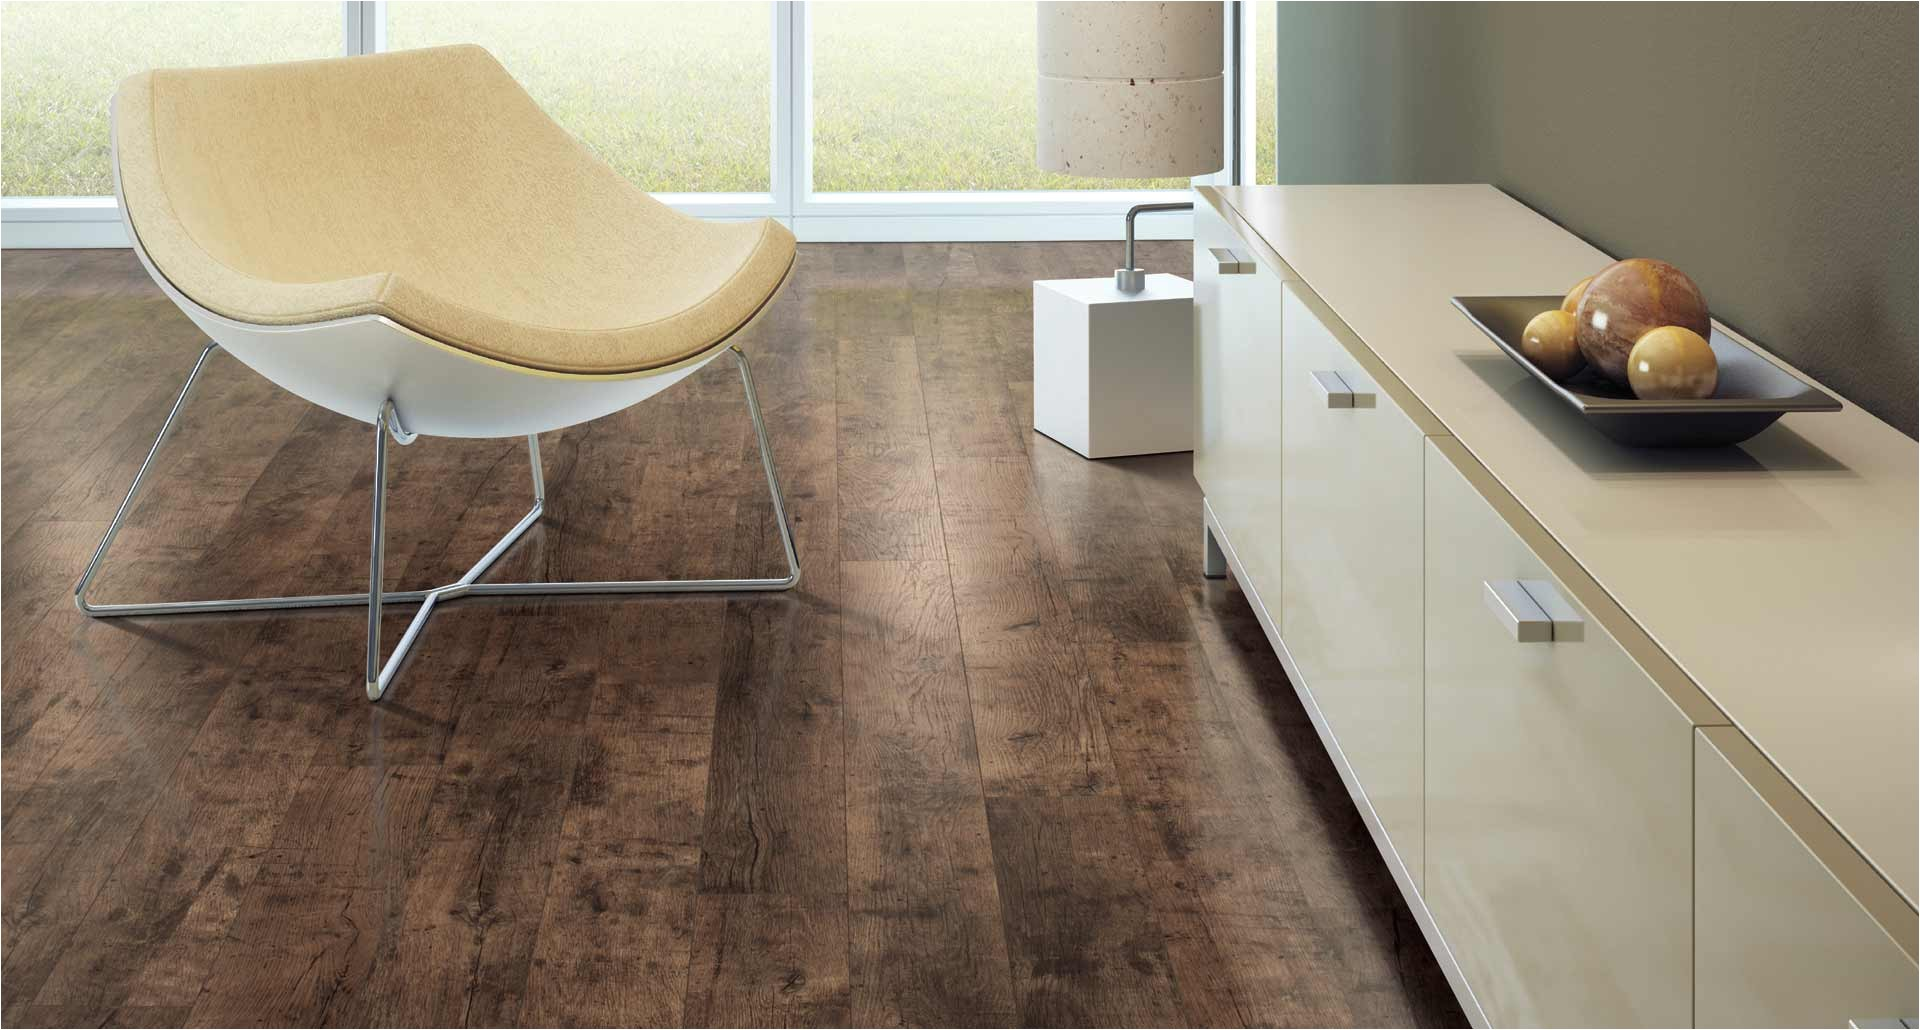 Pergo Rustic Grey Oak Rustic Grey Oak Pergo Xp Laminate Flooring Pergo Flooring